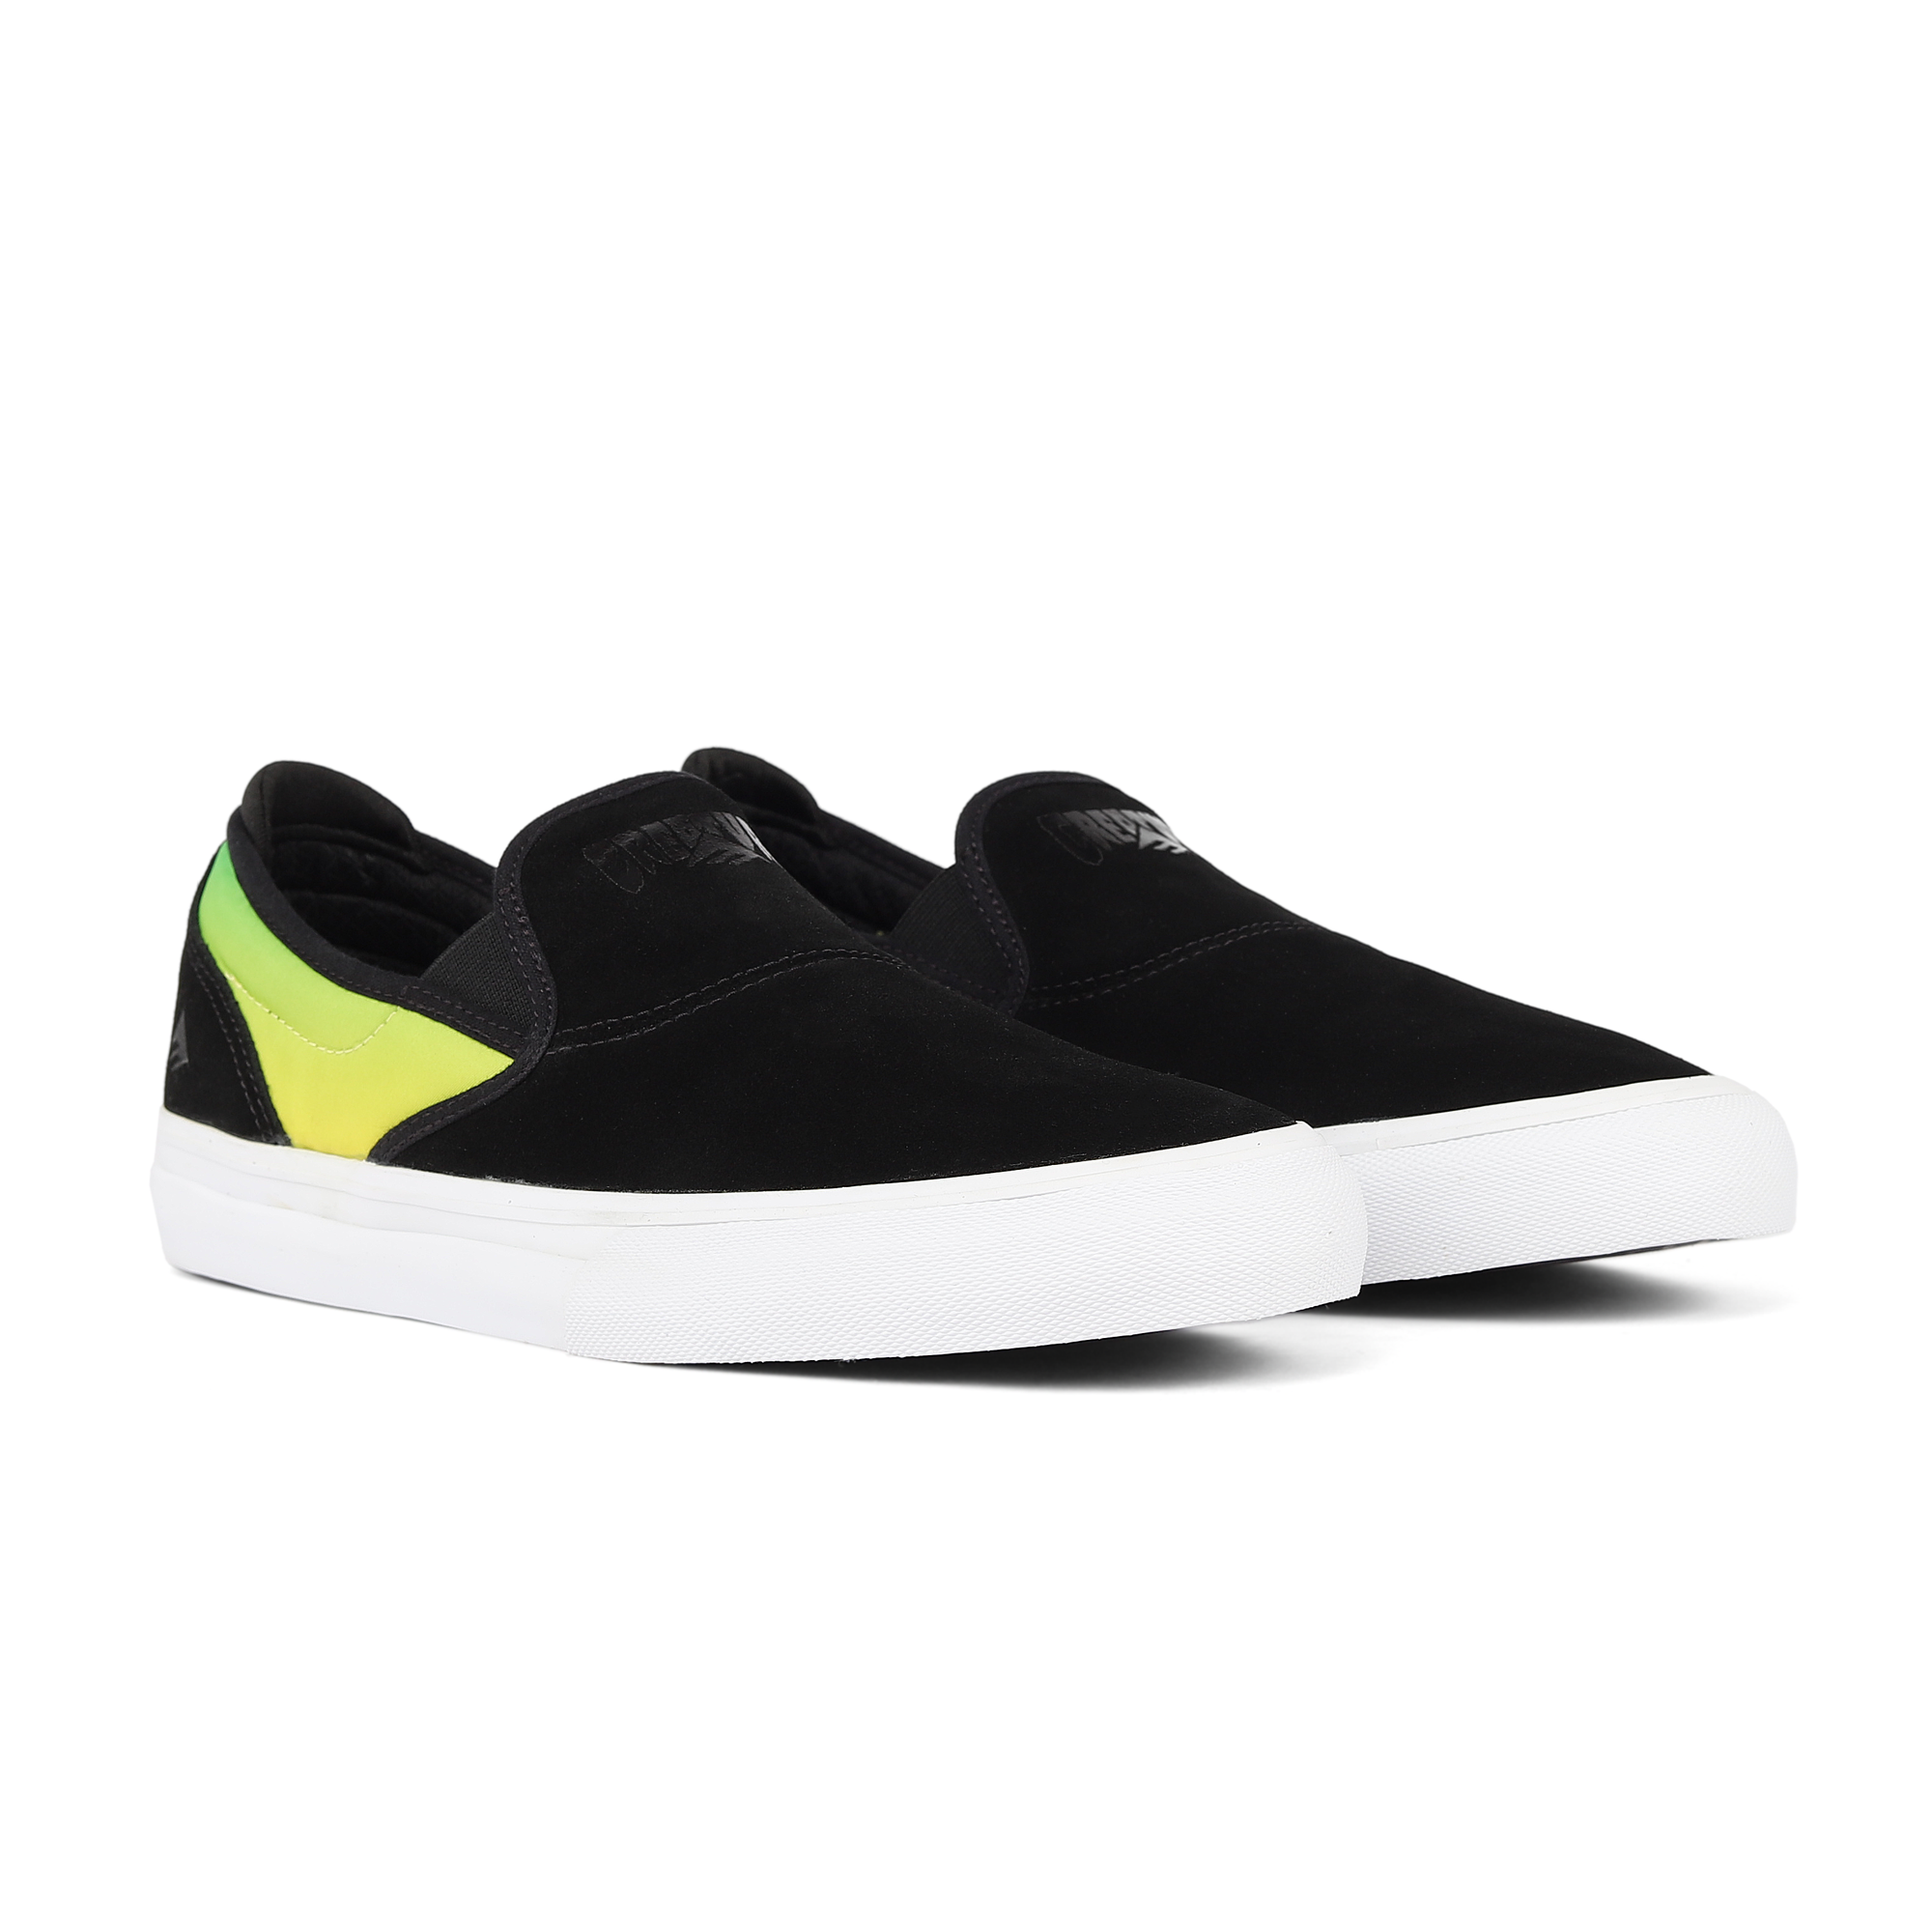 Emerica Wino G6 x Creature Slip Product Photo #2